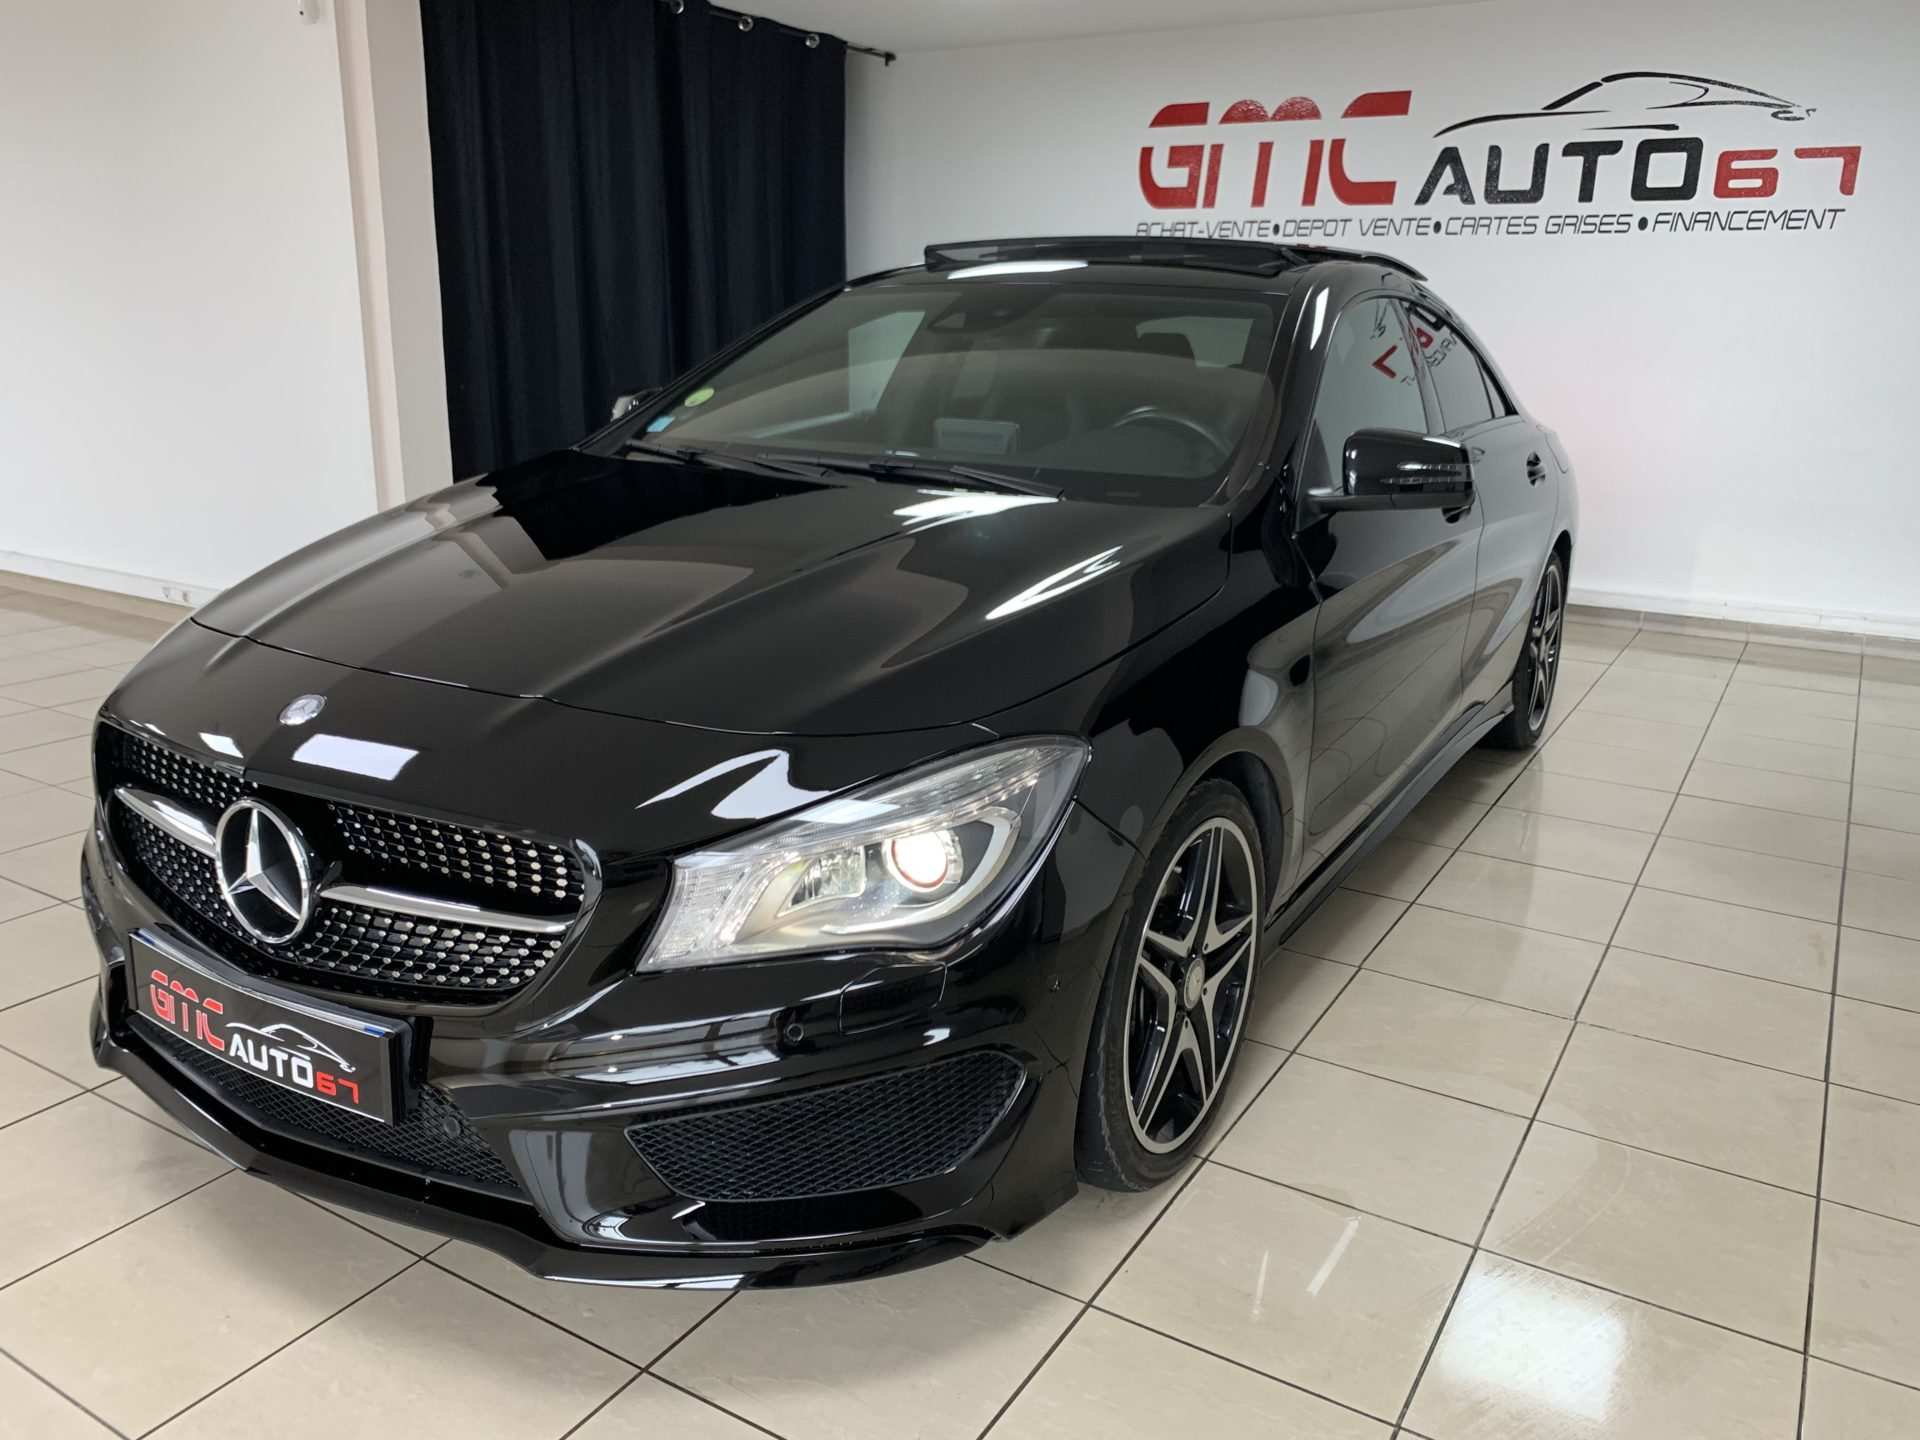 CLA 220D FASCINATION - ALSACE GMC AUTO 67